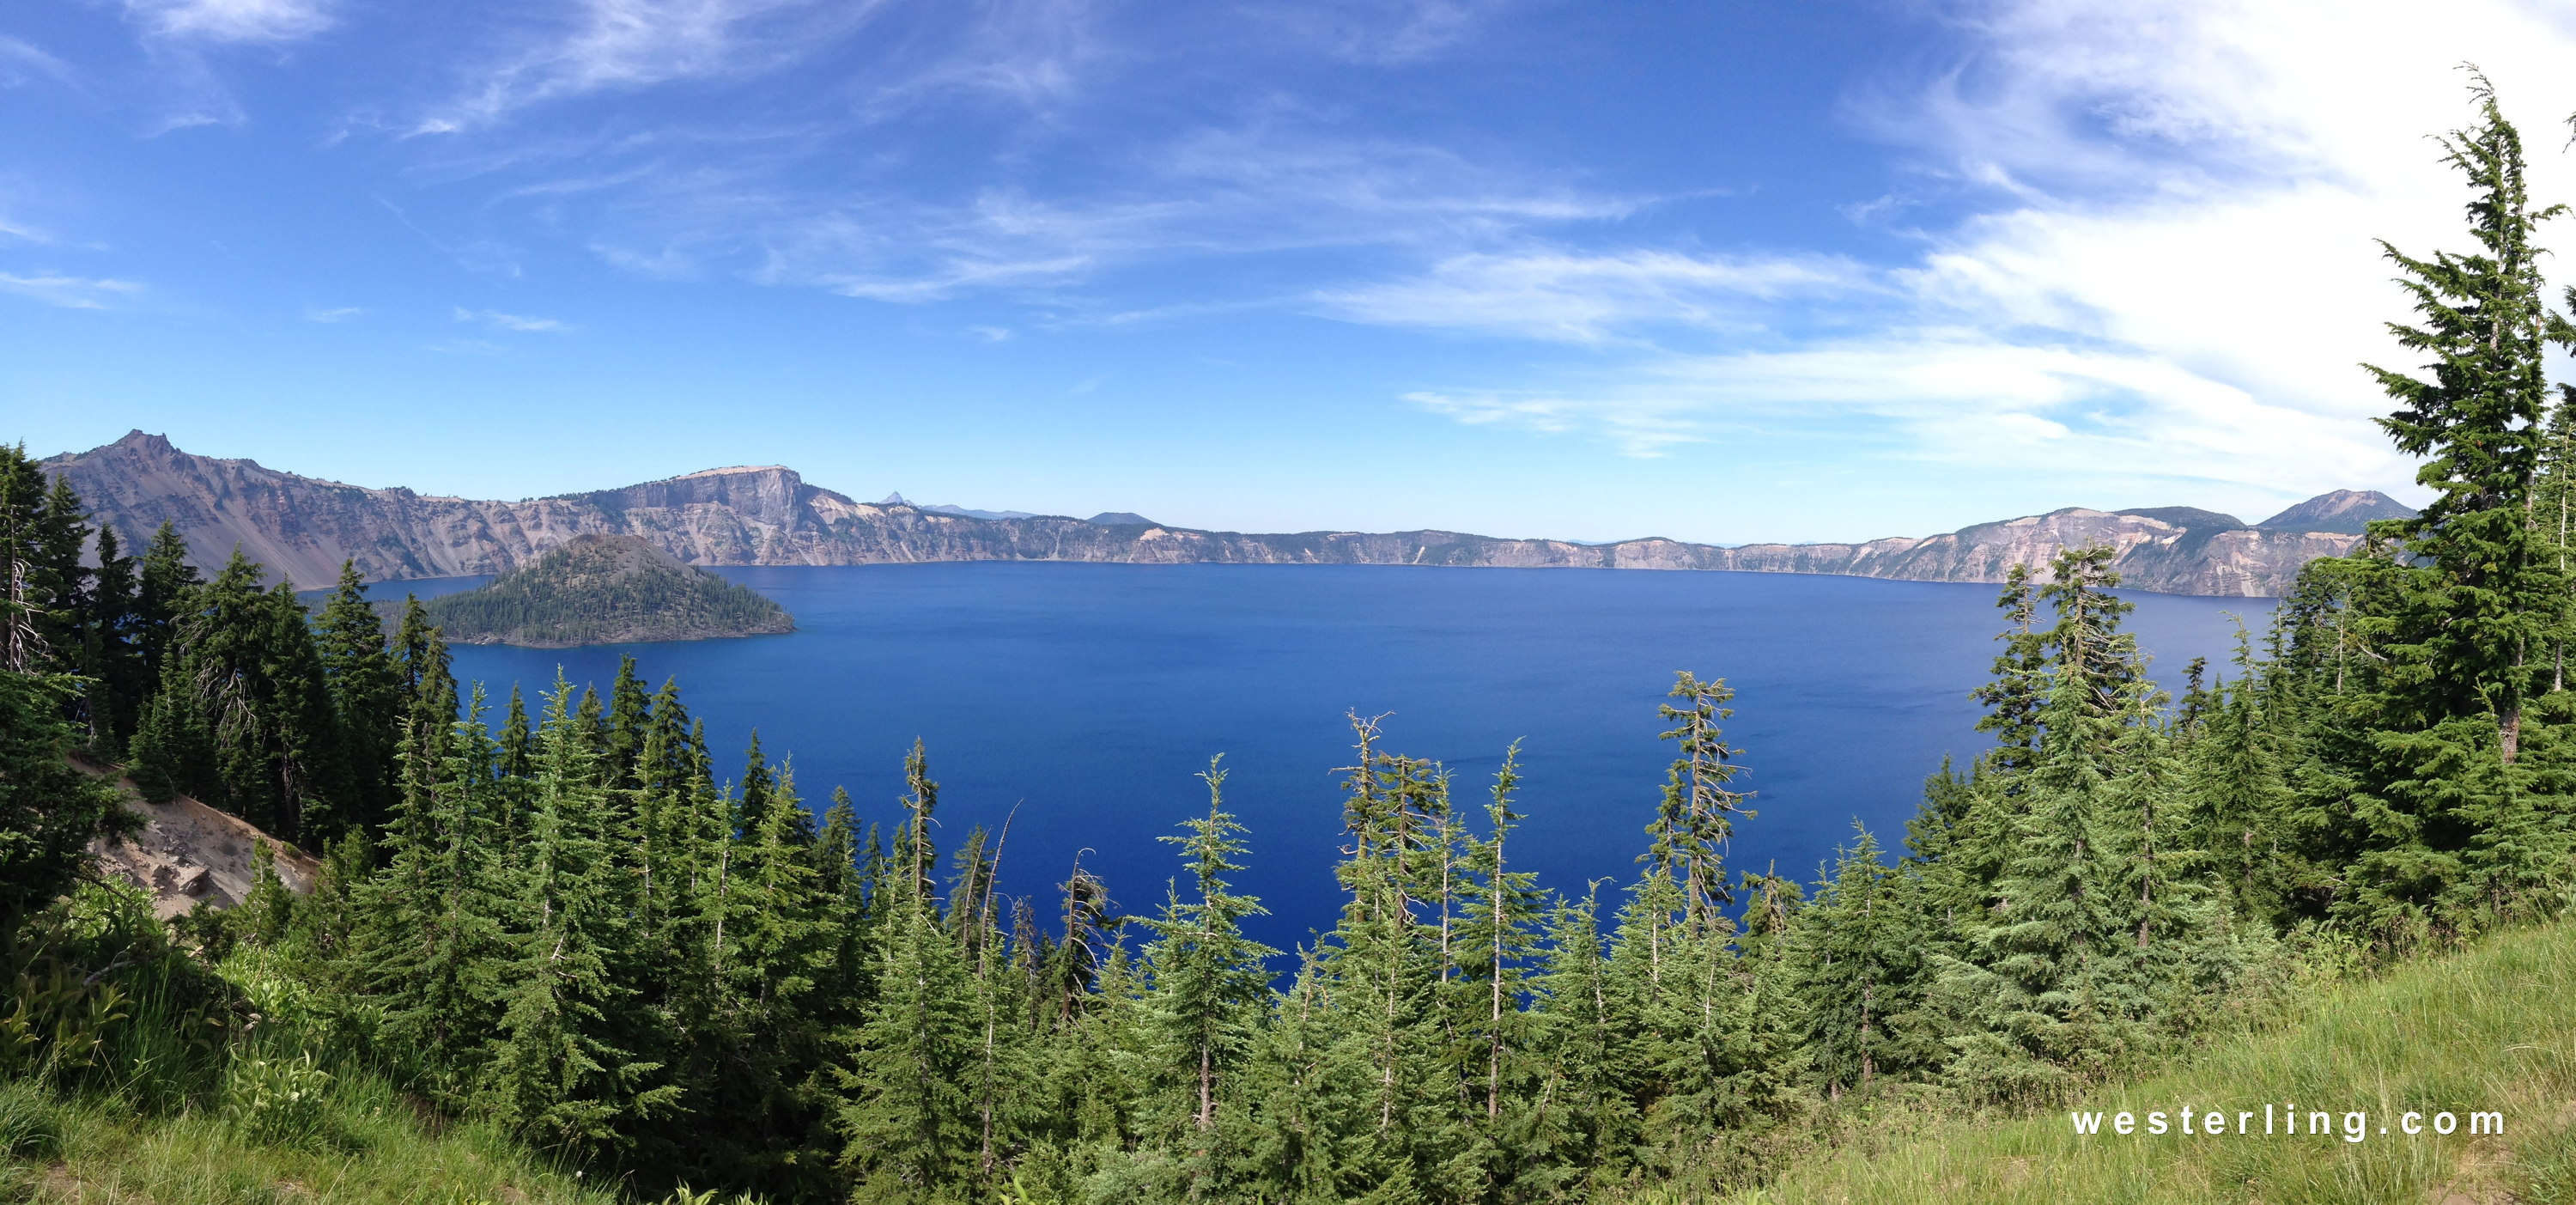 Crater Lake July 4, 2015